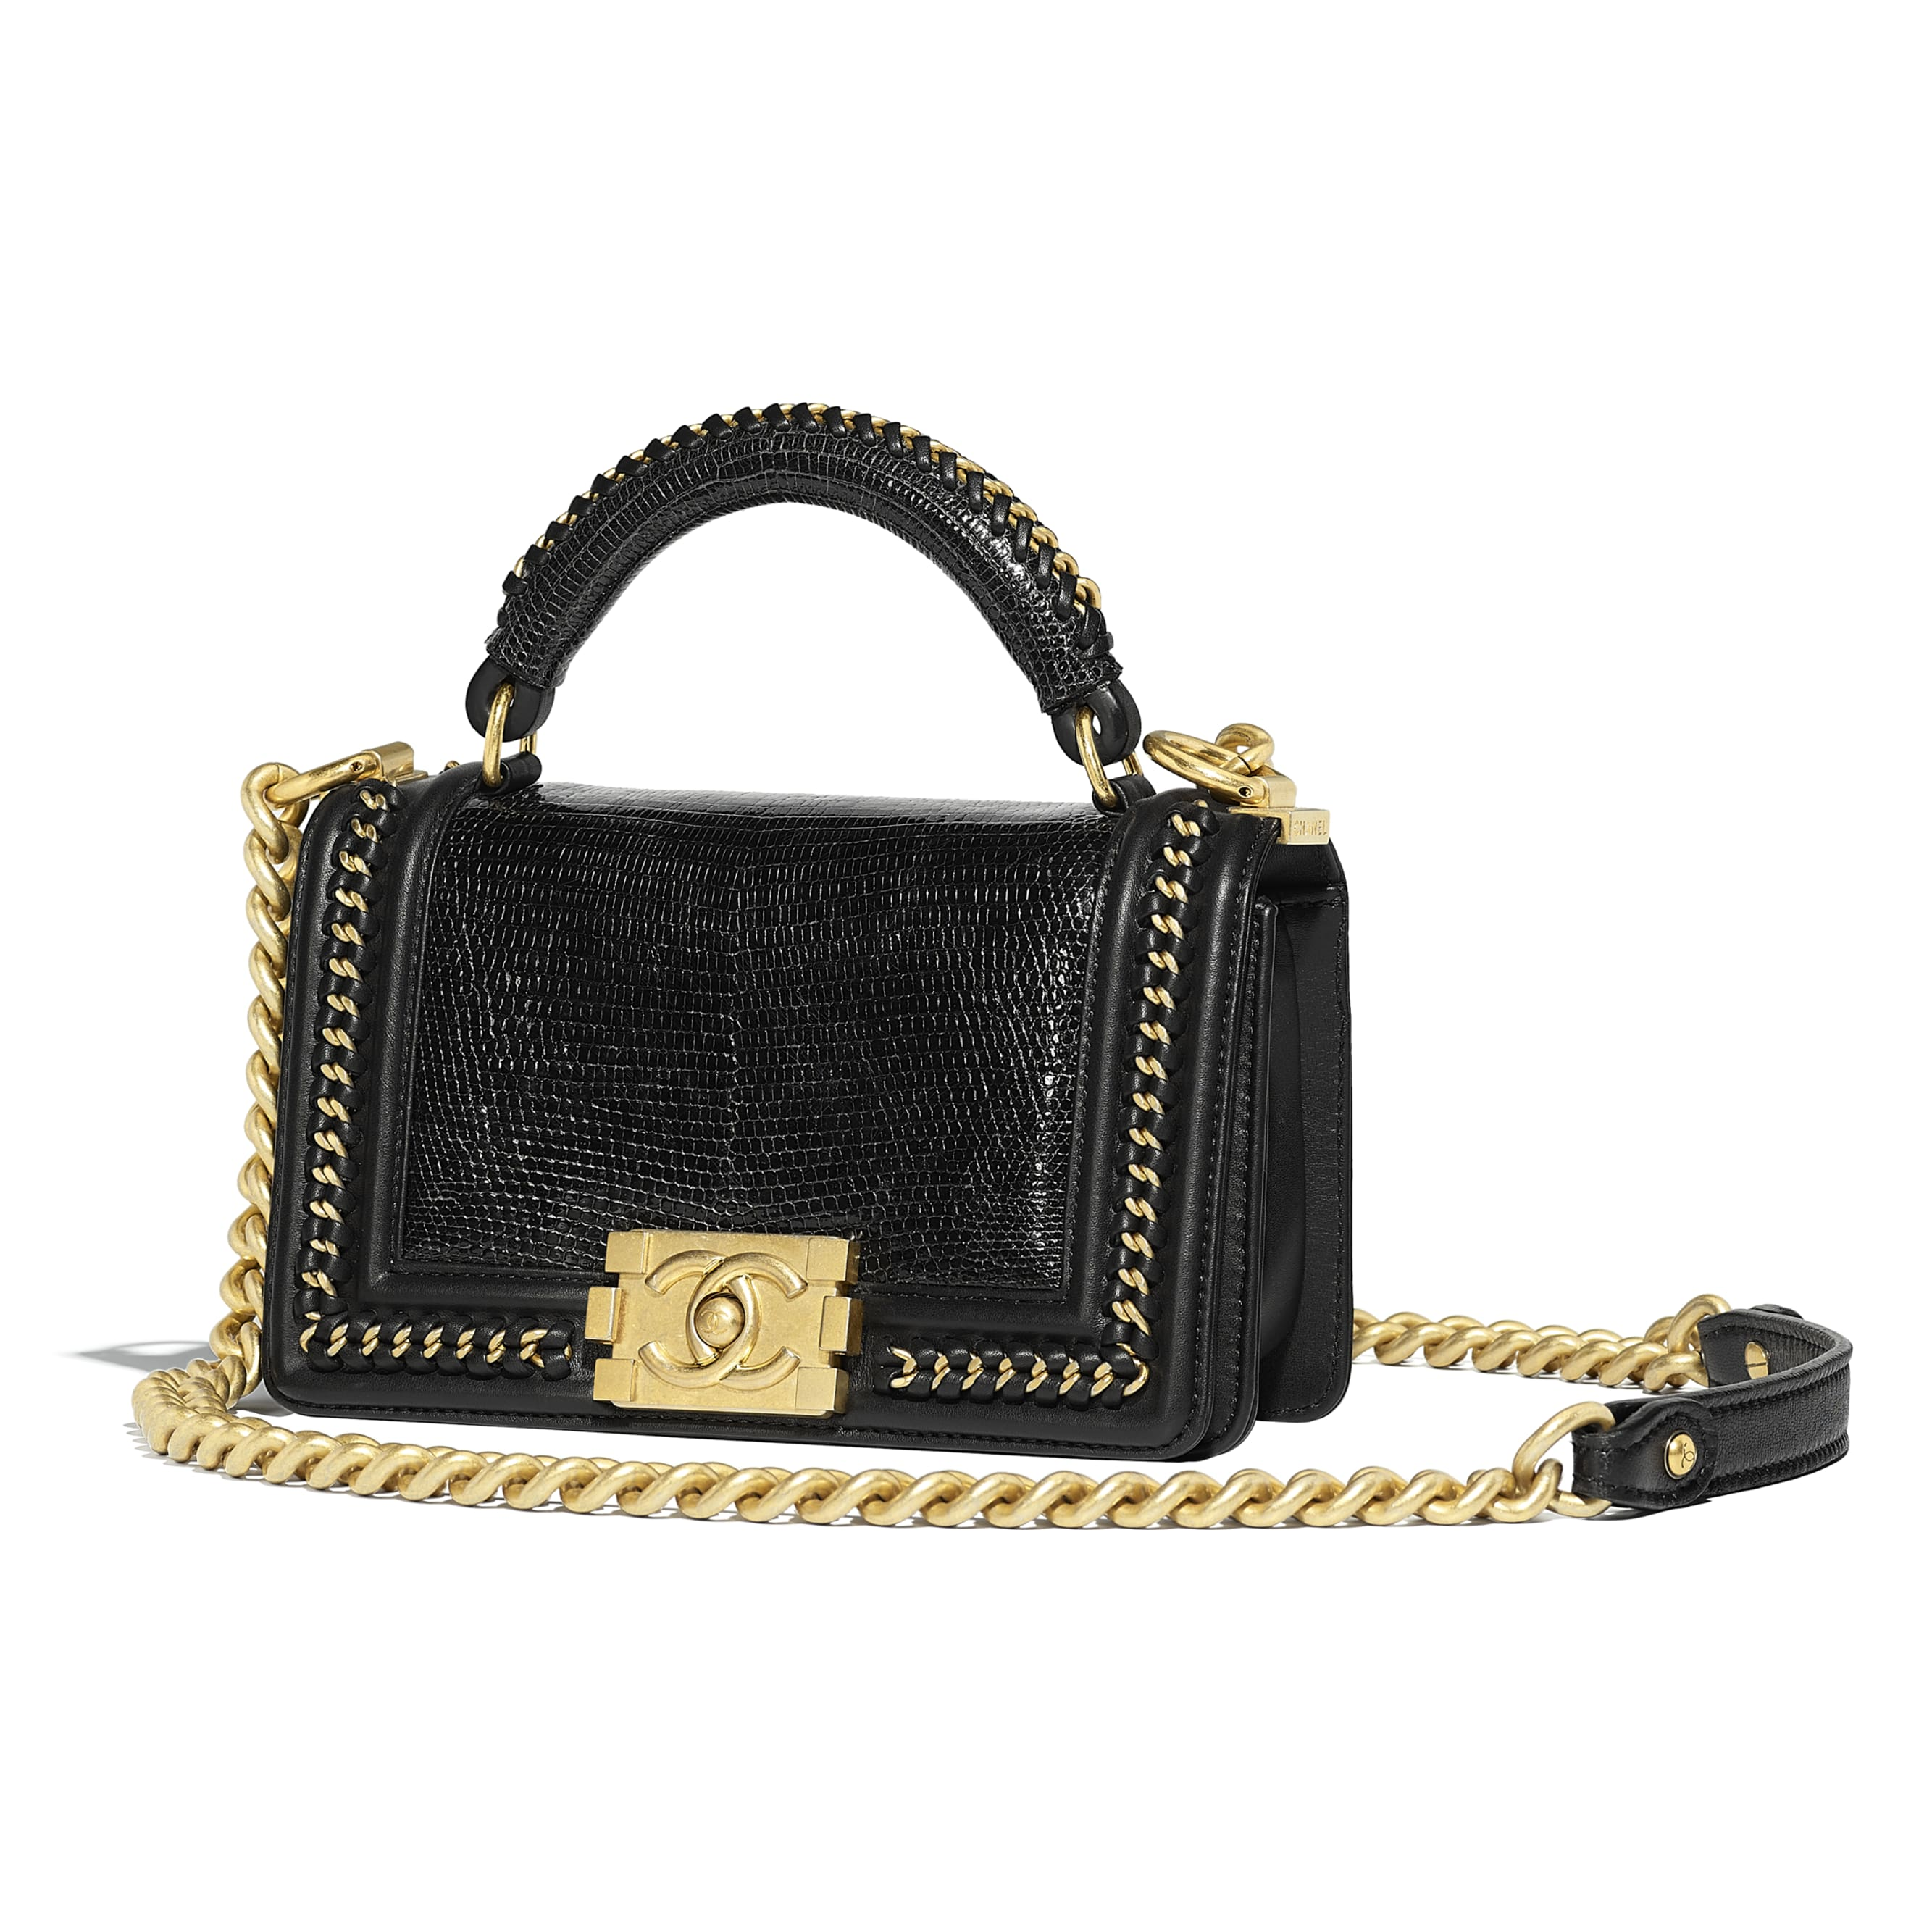 BOY CHANEL Flap Bag with Handle - Black - Lizard, Calfskin & Gold-Tone Metal - Default view - see standard sized version